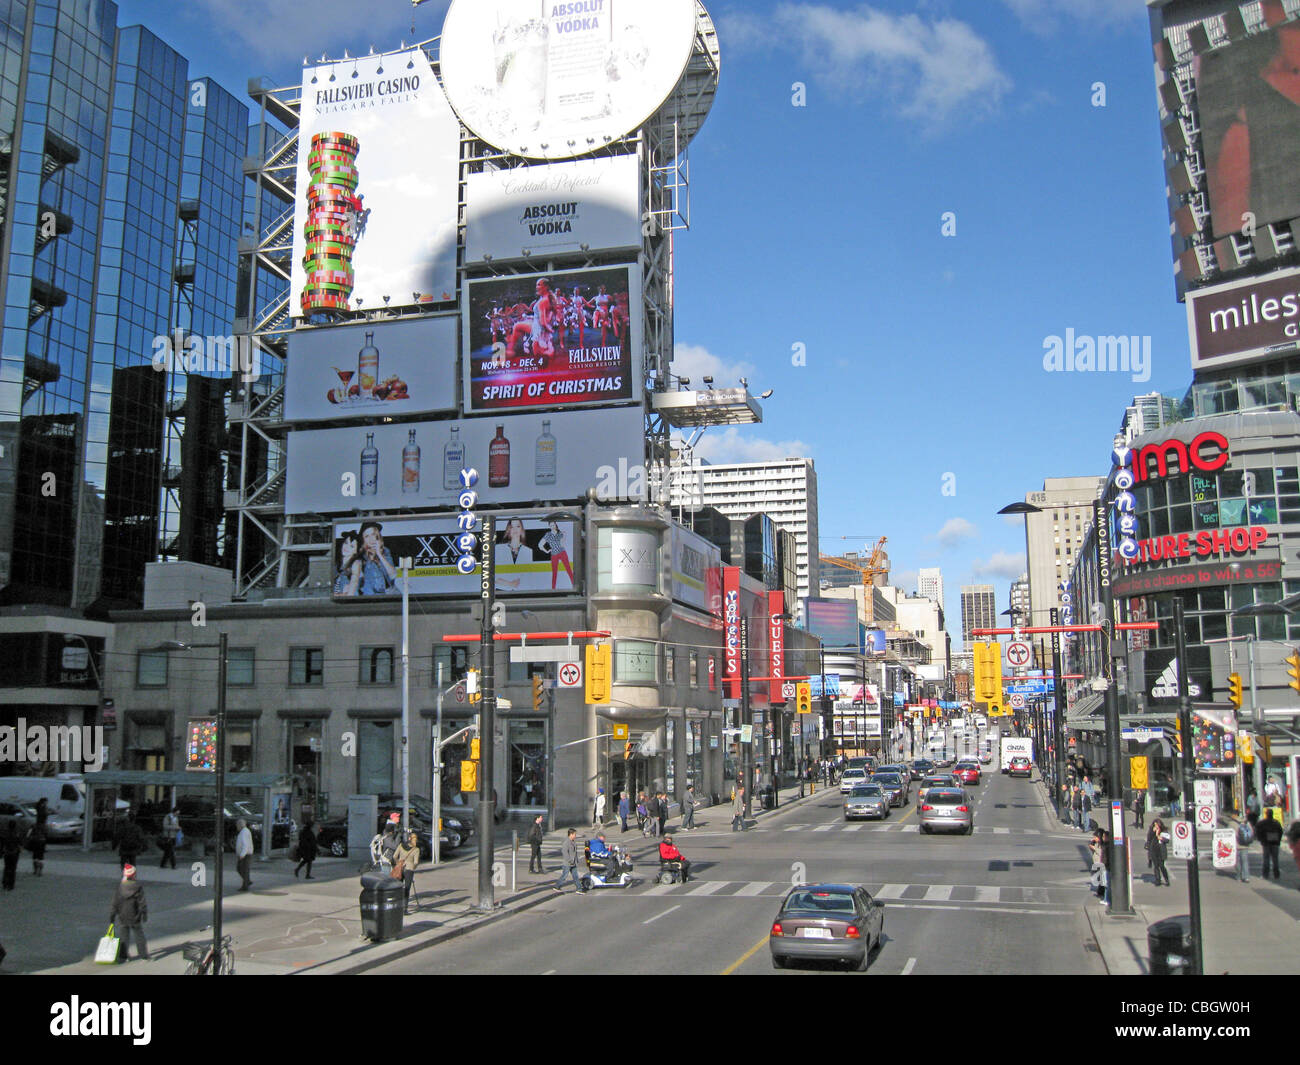 TORONTO, Canada. Yonge-Dundas Square is the city's busiest intersection. Photo Tony Gale - Stock Image